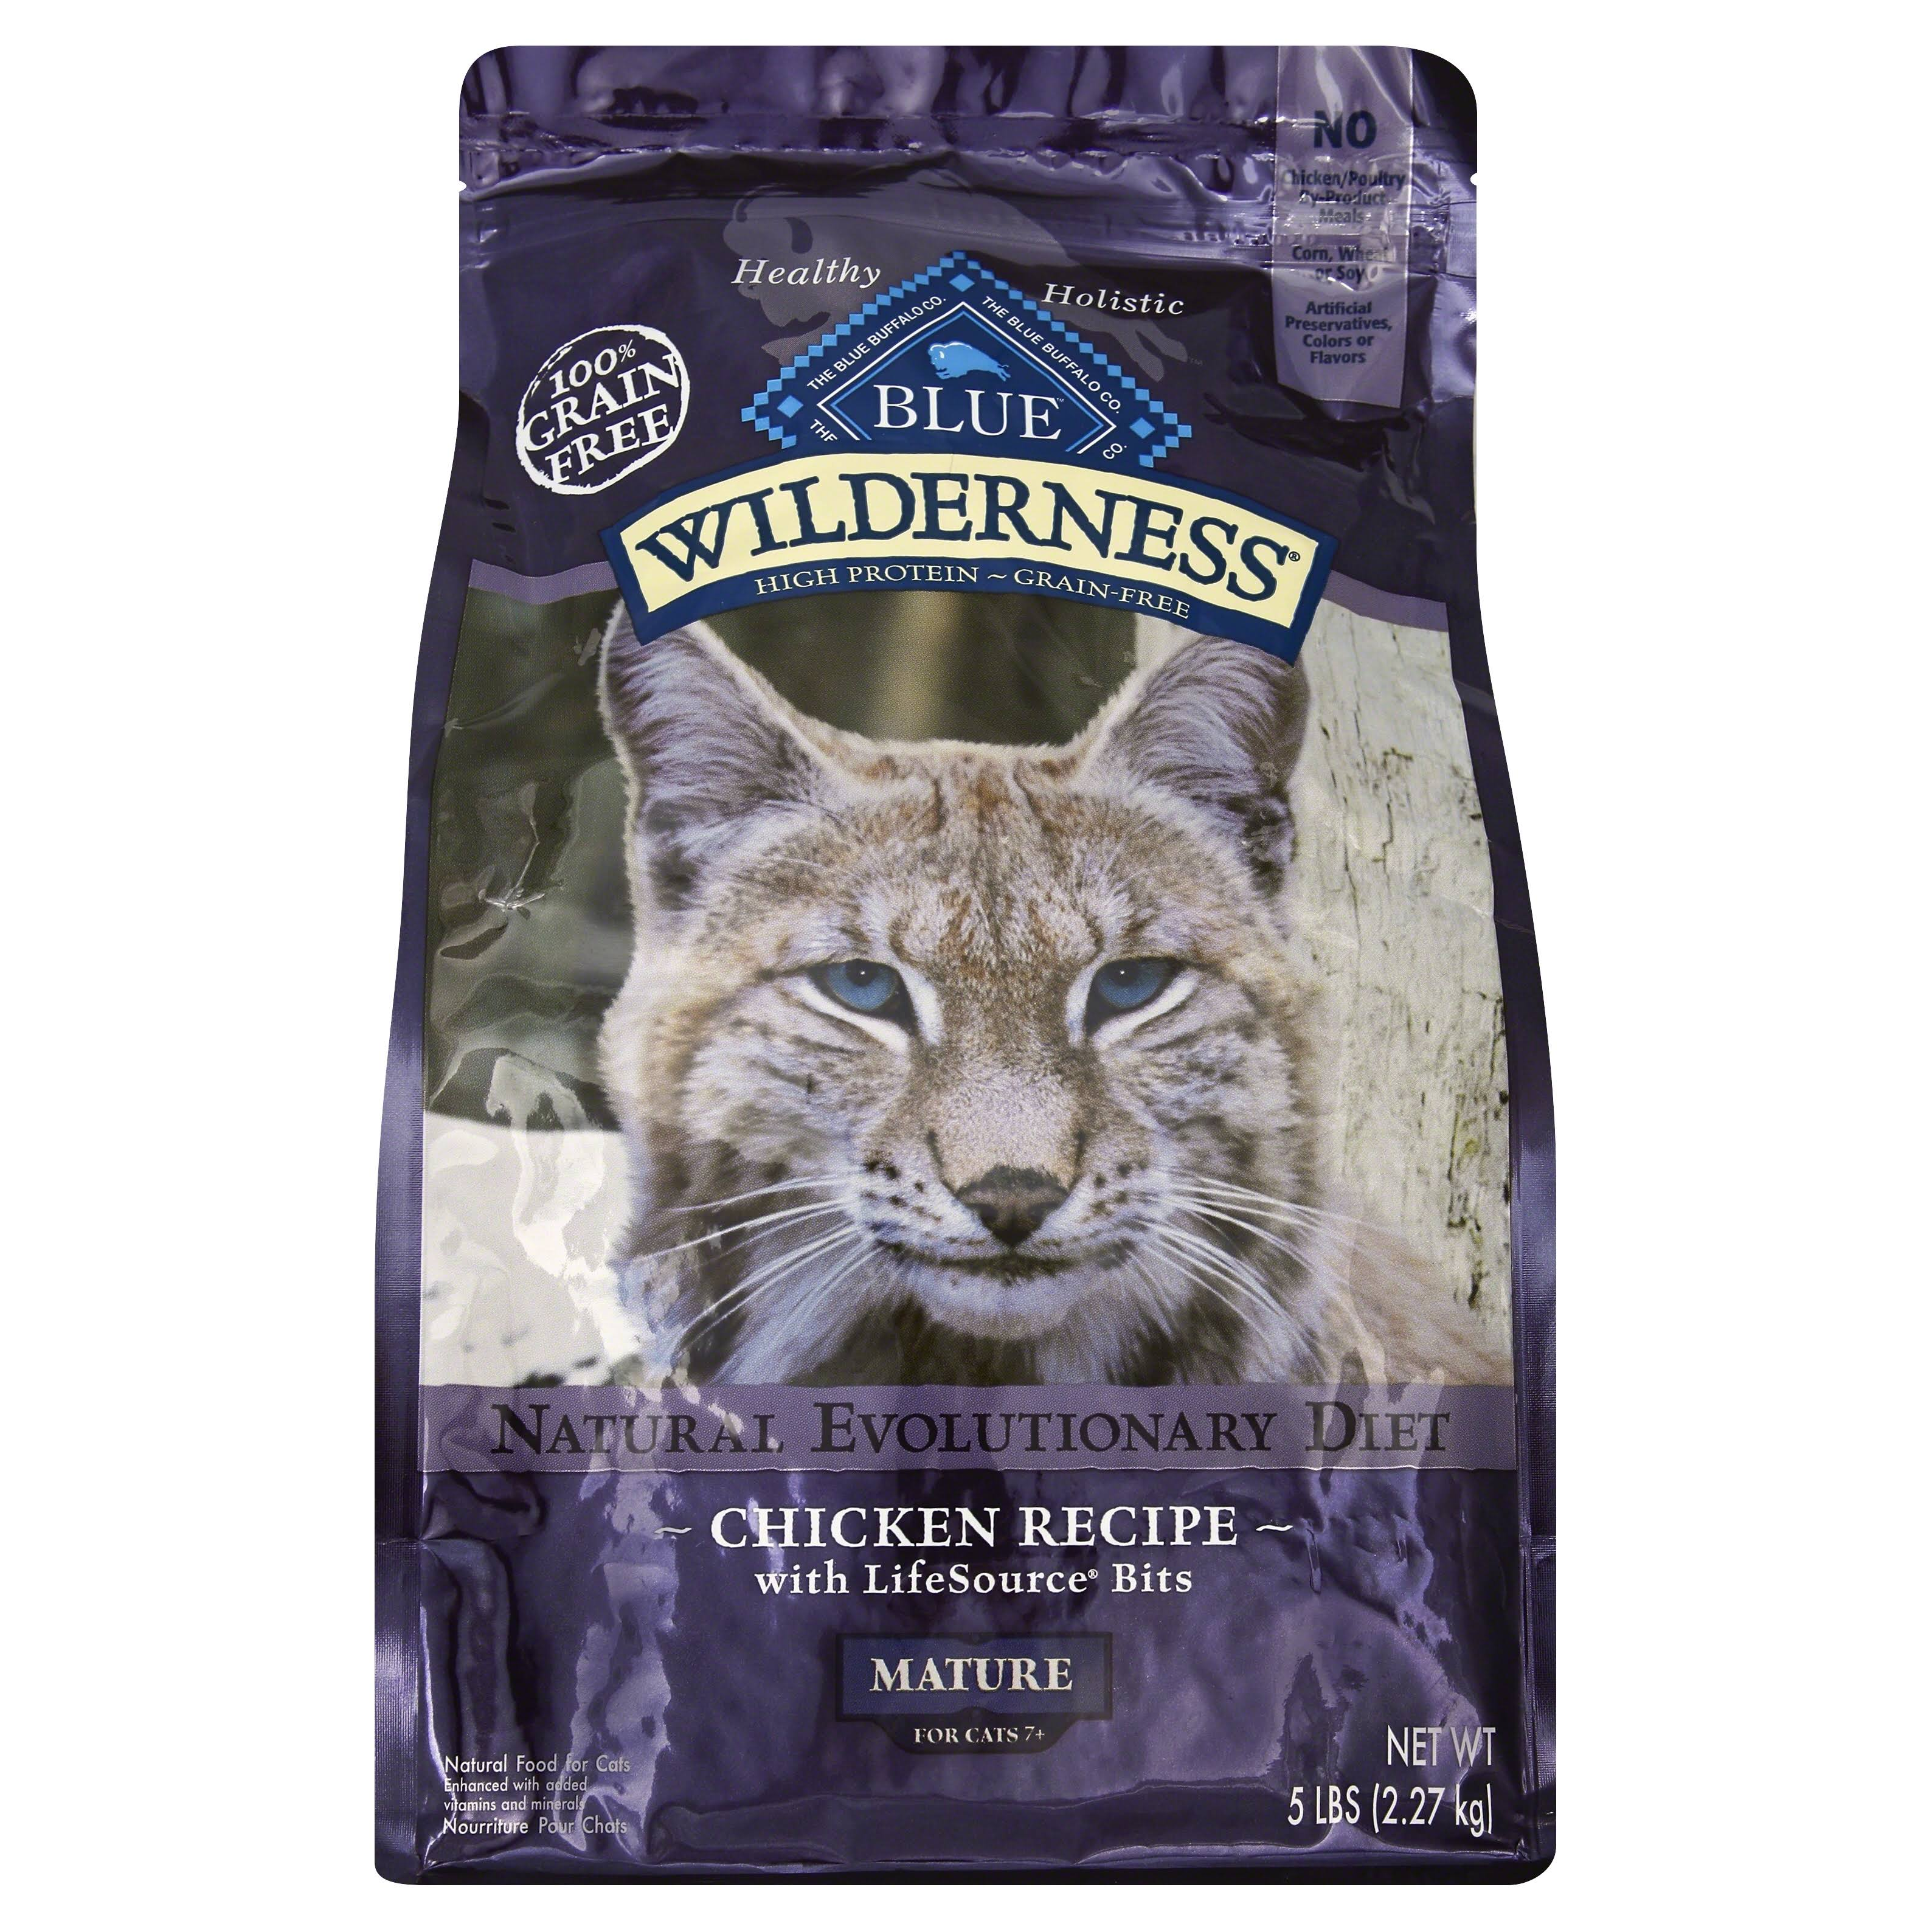 Blue Buffalo Wilderness Cat Food - Chicken